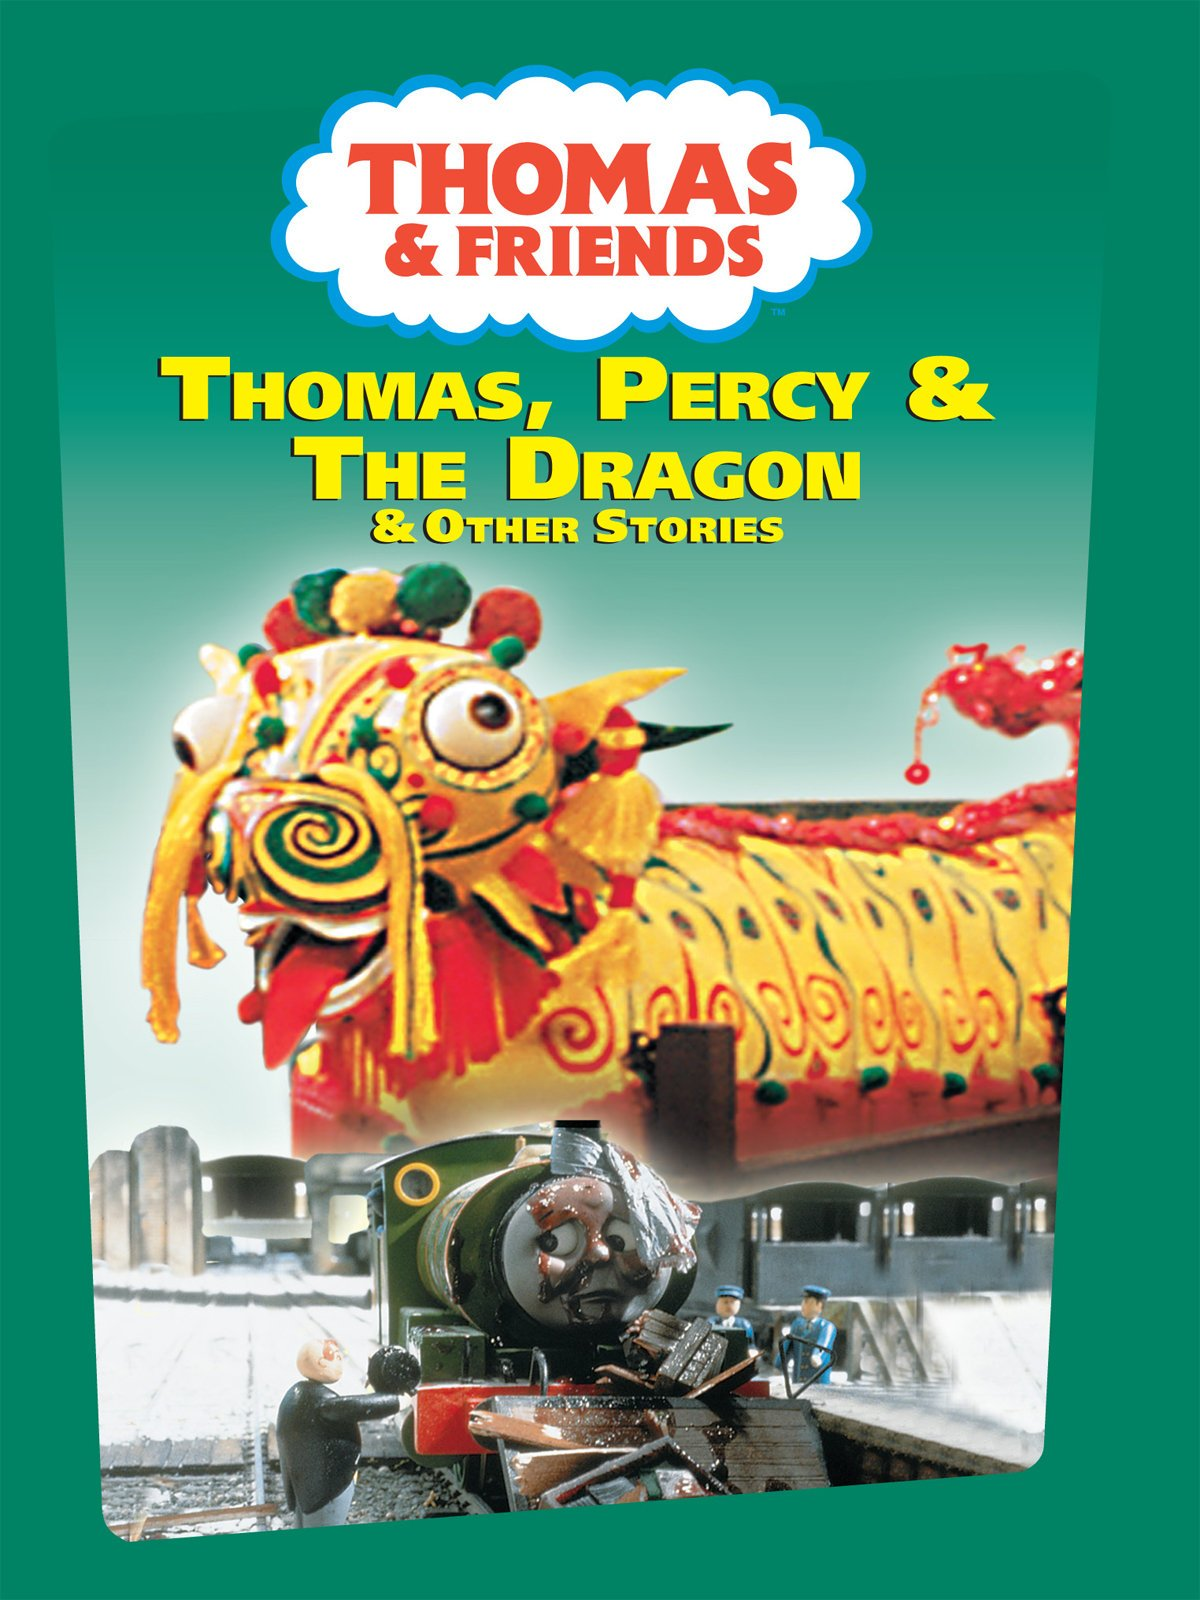 Thomas, Percy & the Dragon and Other Stories